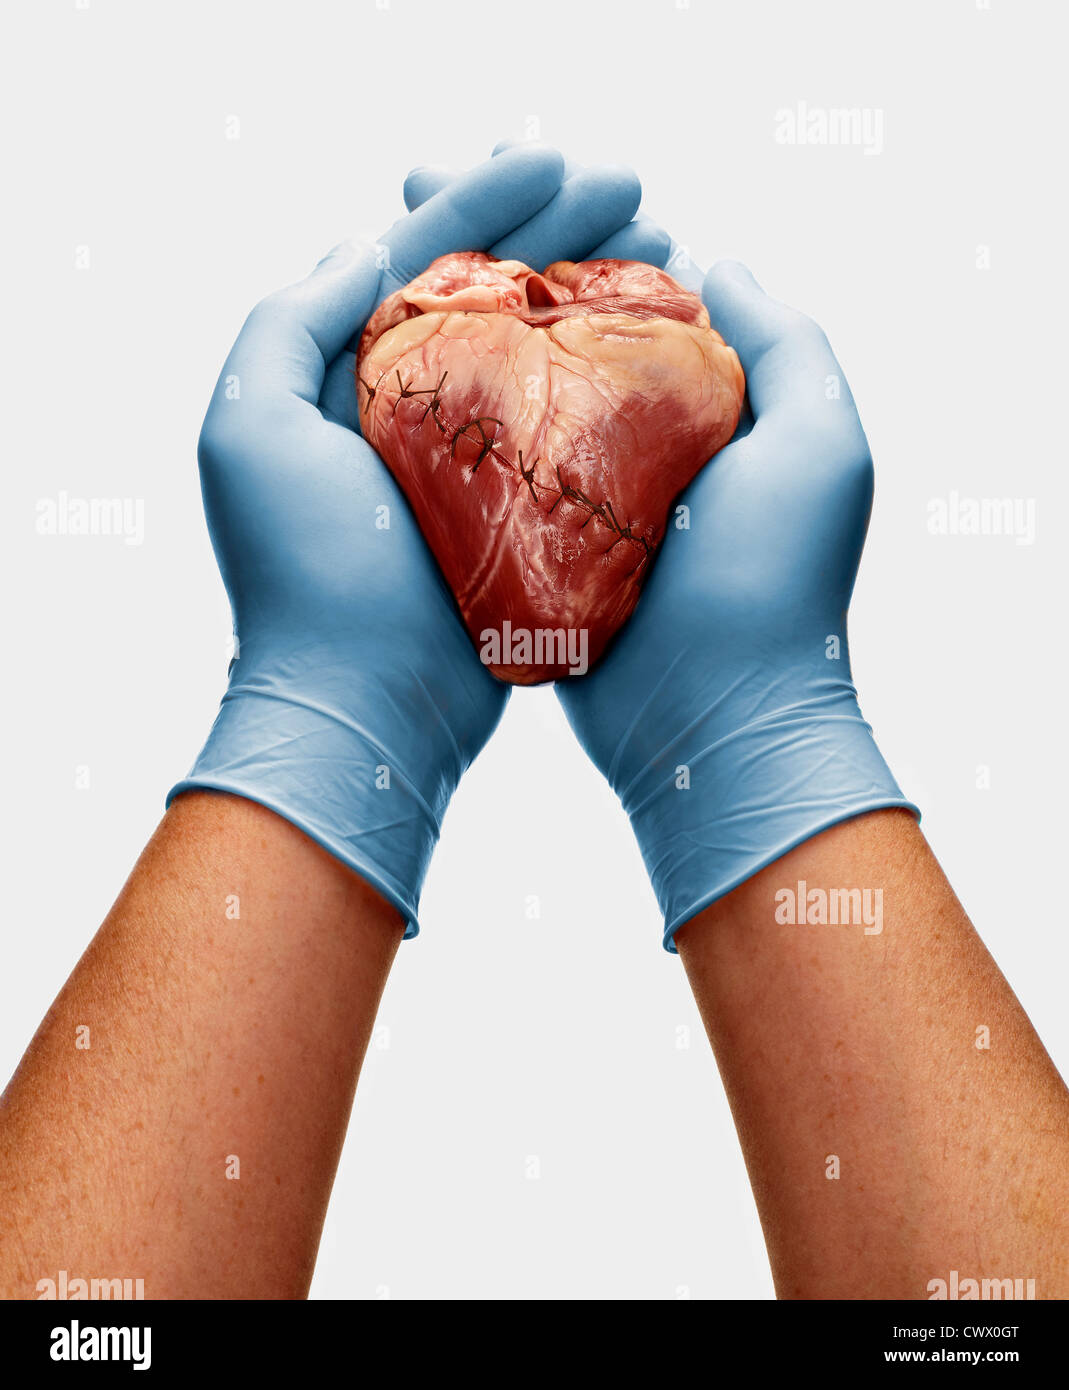 Gloved hands holding stitched heart - Stock Image